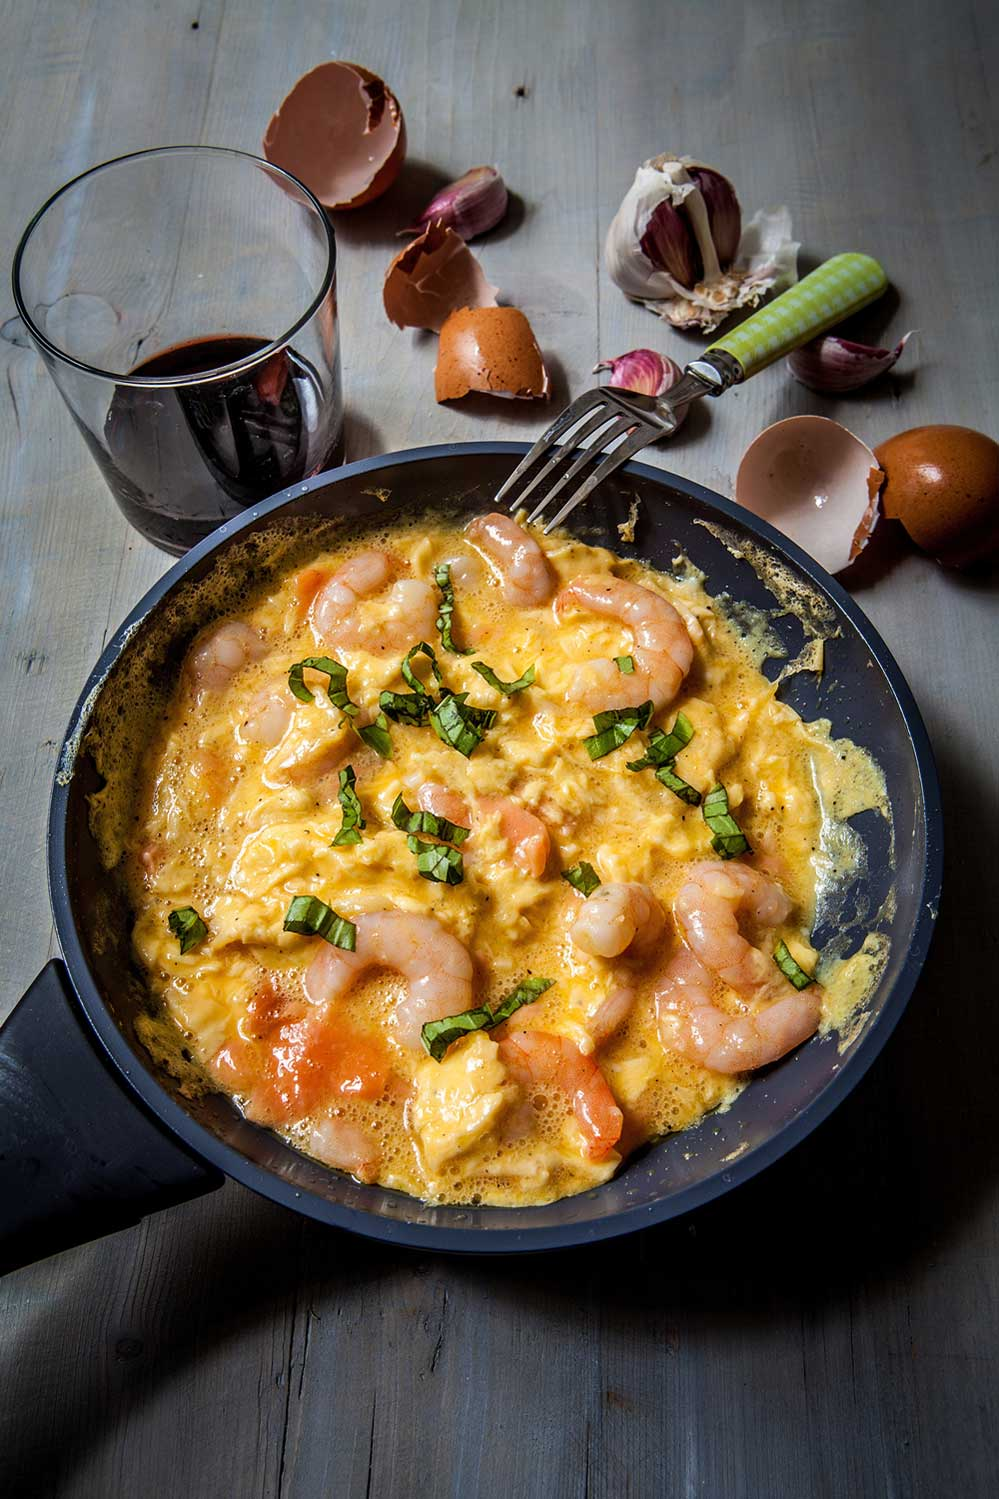 Online Personal Trainer Breakfast Recipes - Scrambled Prawns.jpg